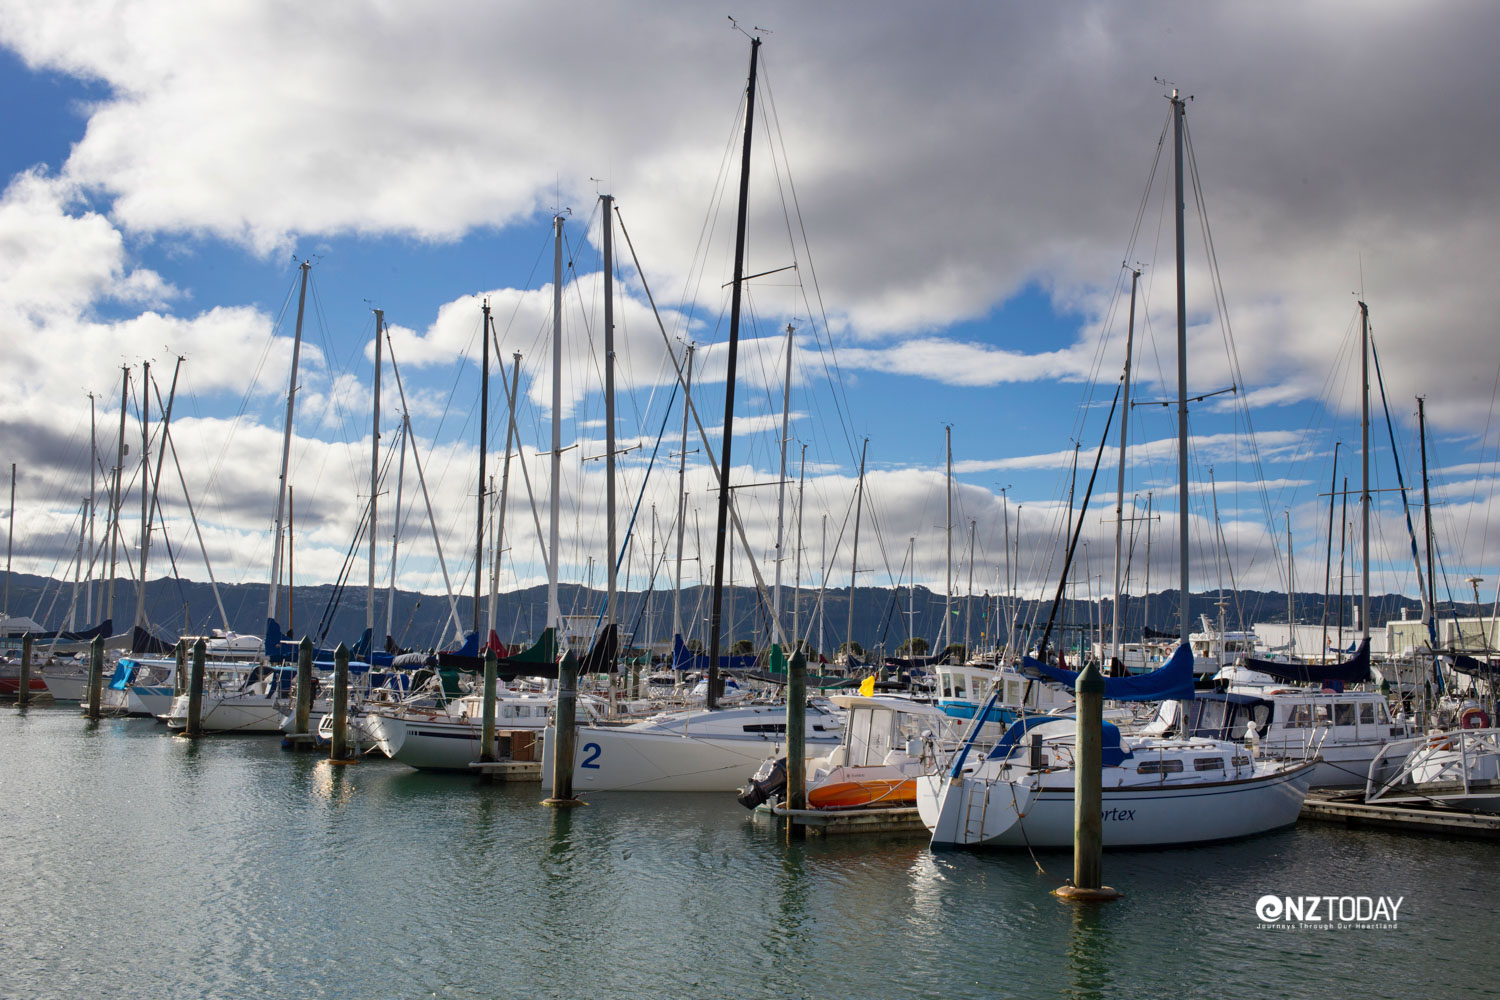 Seaview Marina has around 300 berths